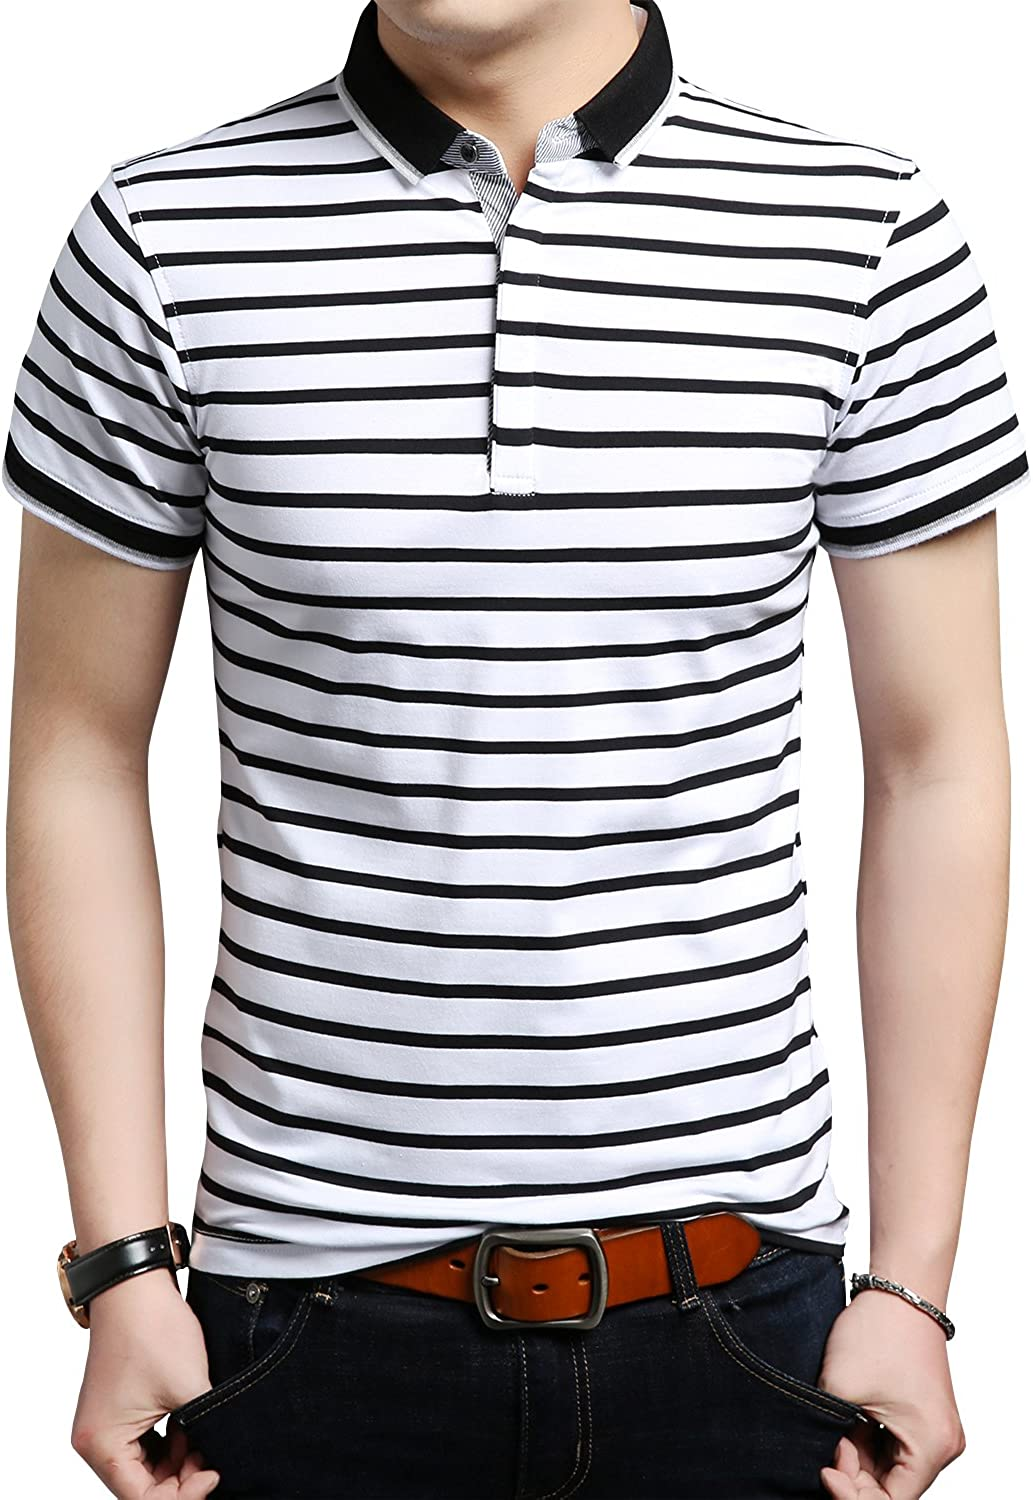 Womleys Mens Casual Nashville-Davidson Mall Striped Slim Fit Ranking TOP18 Short Shirts Sleeve Polo Co